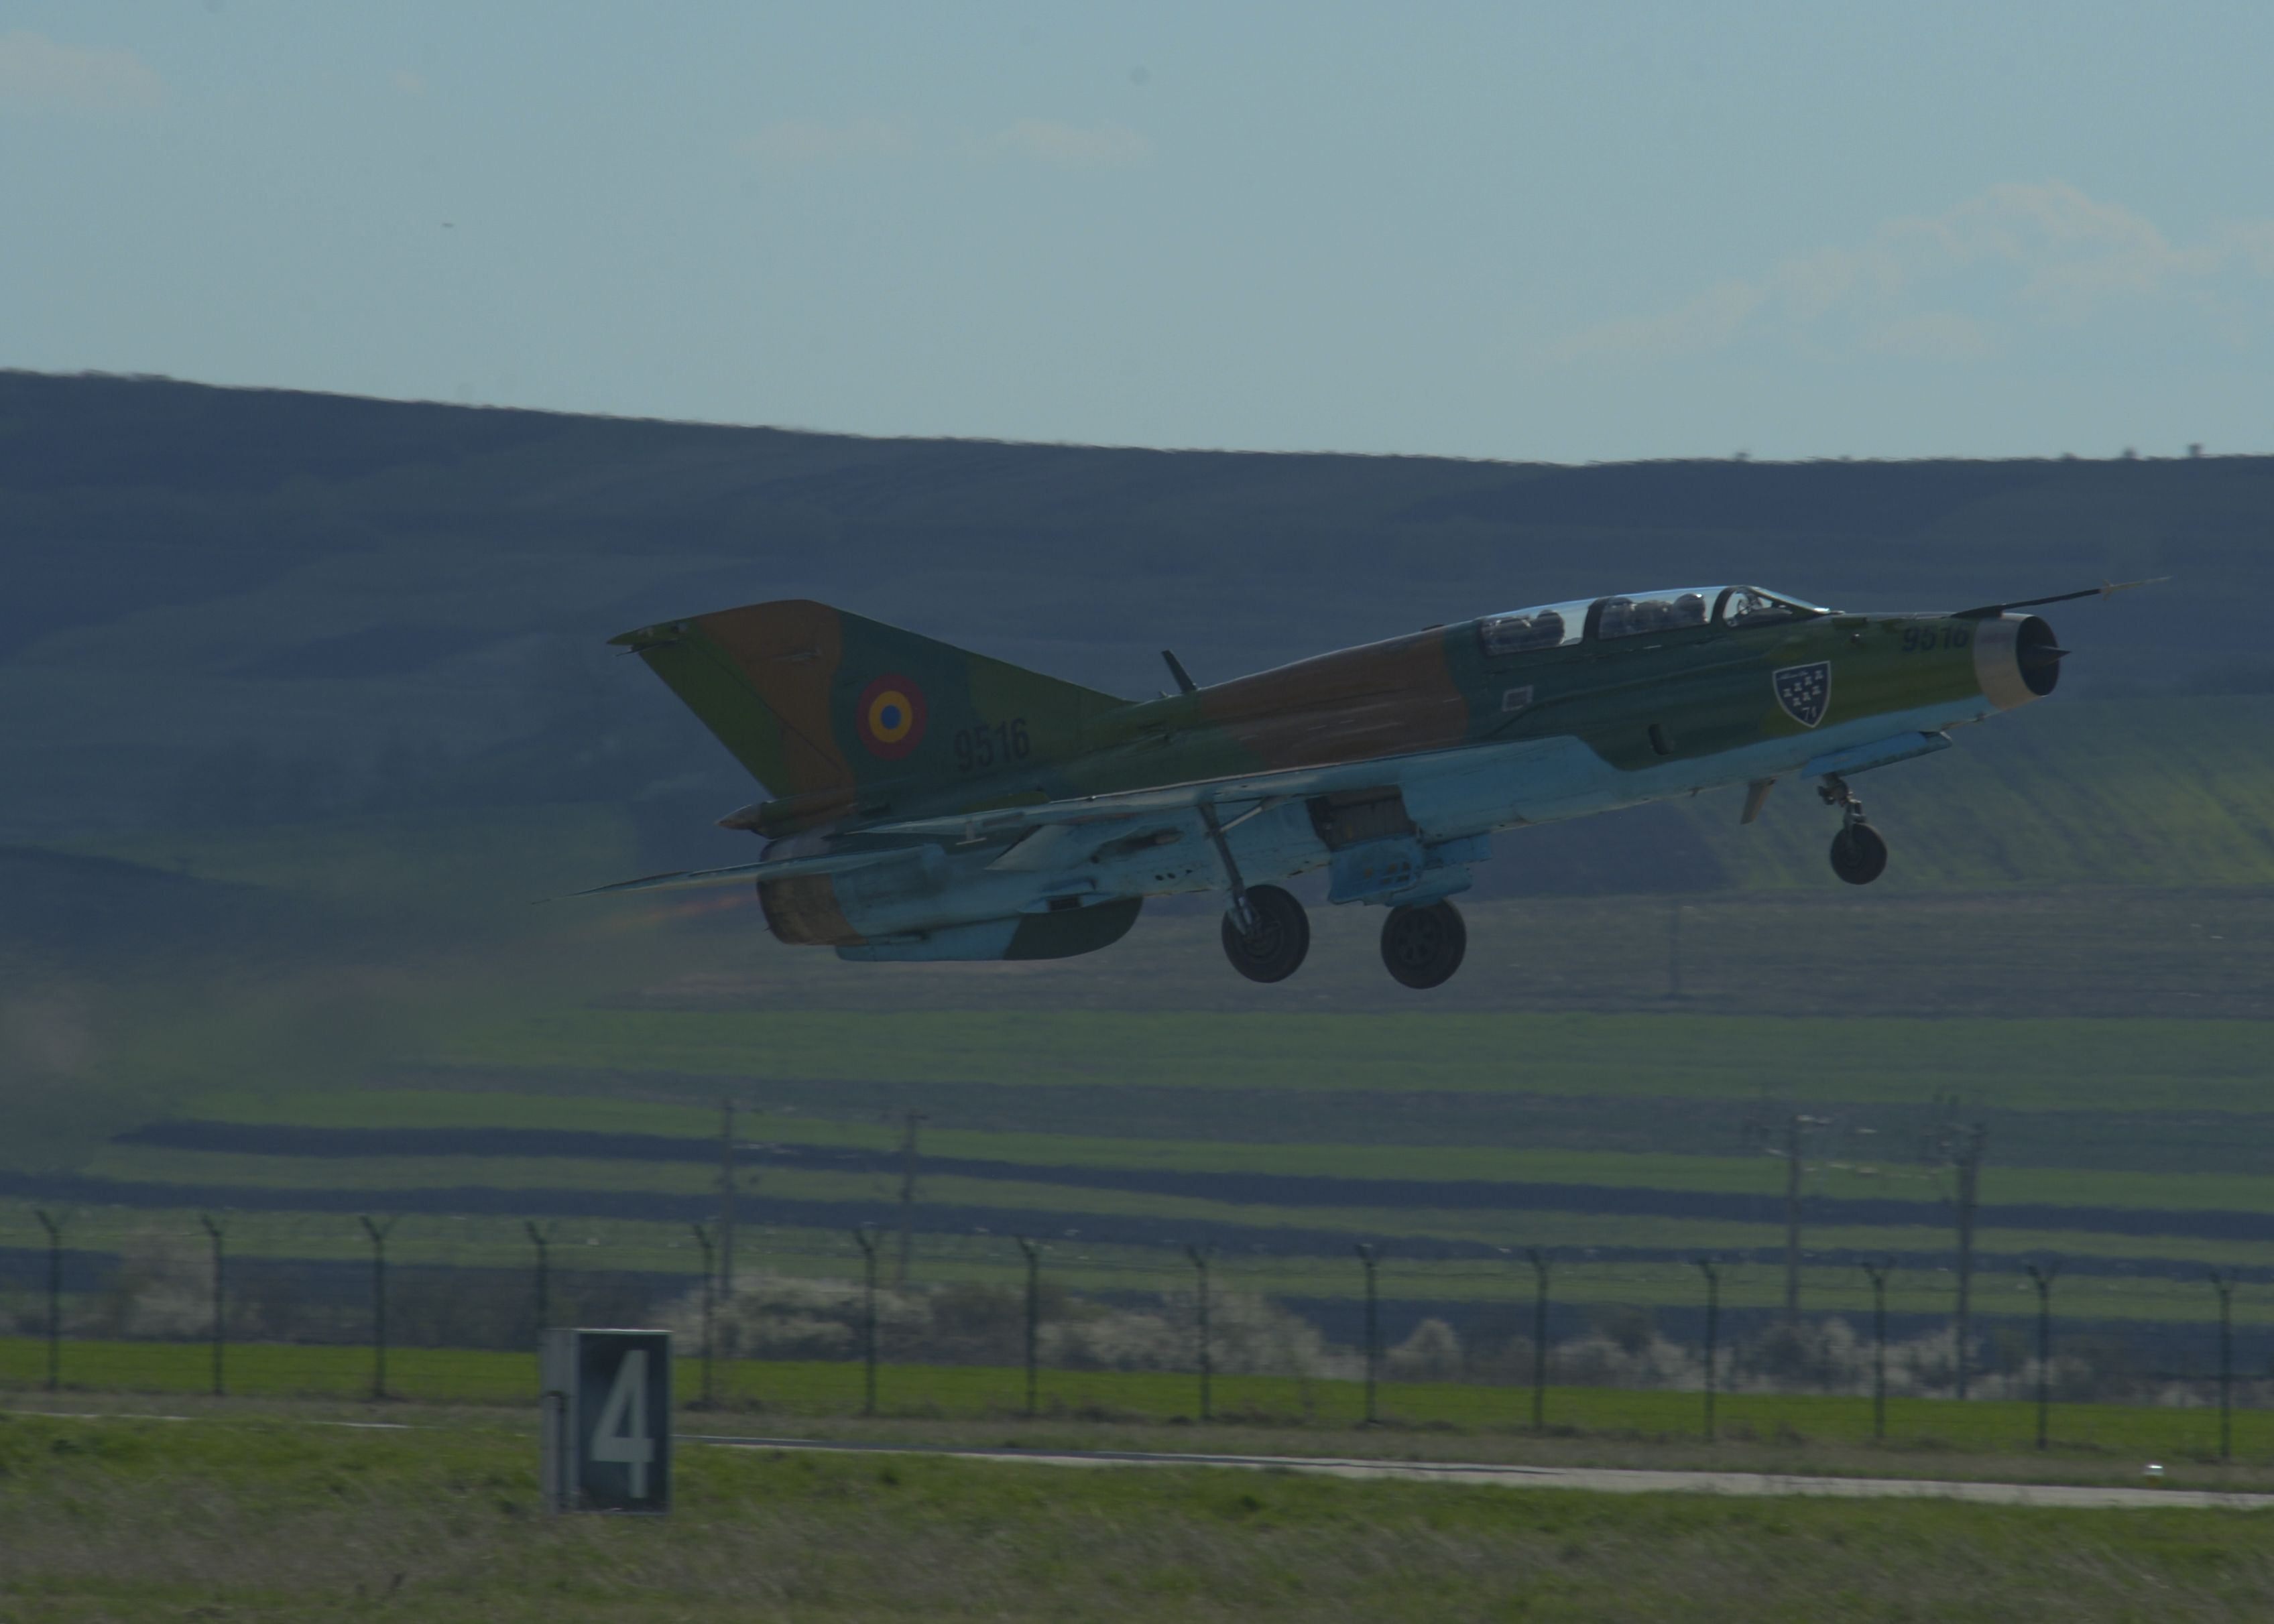 A Romanian air force MiG-21 fighter aircraft assigned to the 71st Air Base takes off from the flightline at Campia Turzii, Romania, April 16, 2015. The U.S. and Romanian air forces will conduct training aimed to strengthen interoperability and demonstrate the countries' shared commitment to the security and stability of Europe. (U.S. Air Force photo by Staff Sgt. Joe W. McFadden/Released)